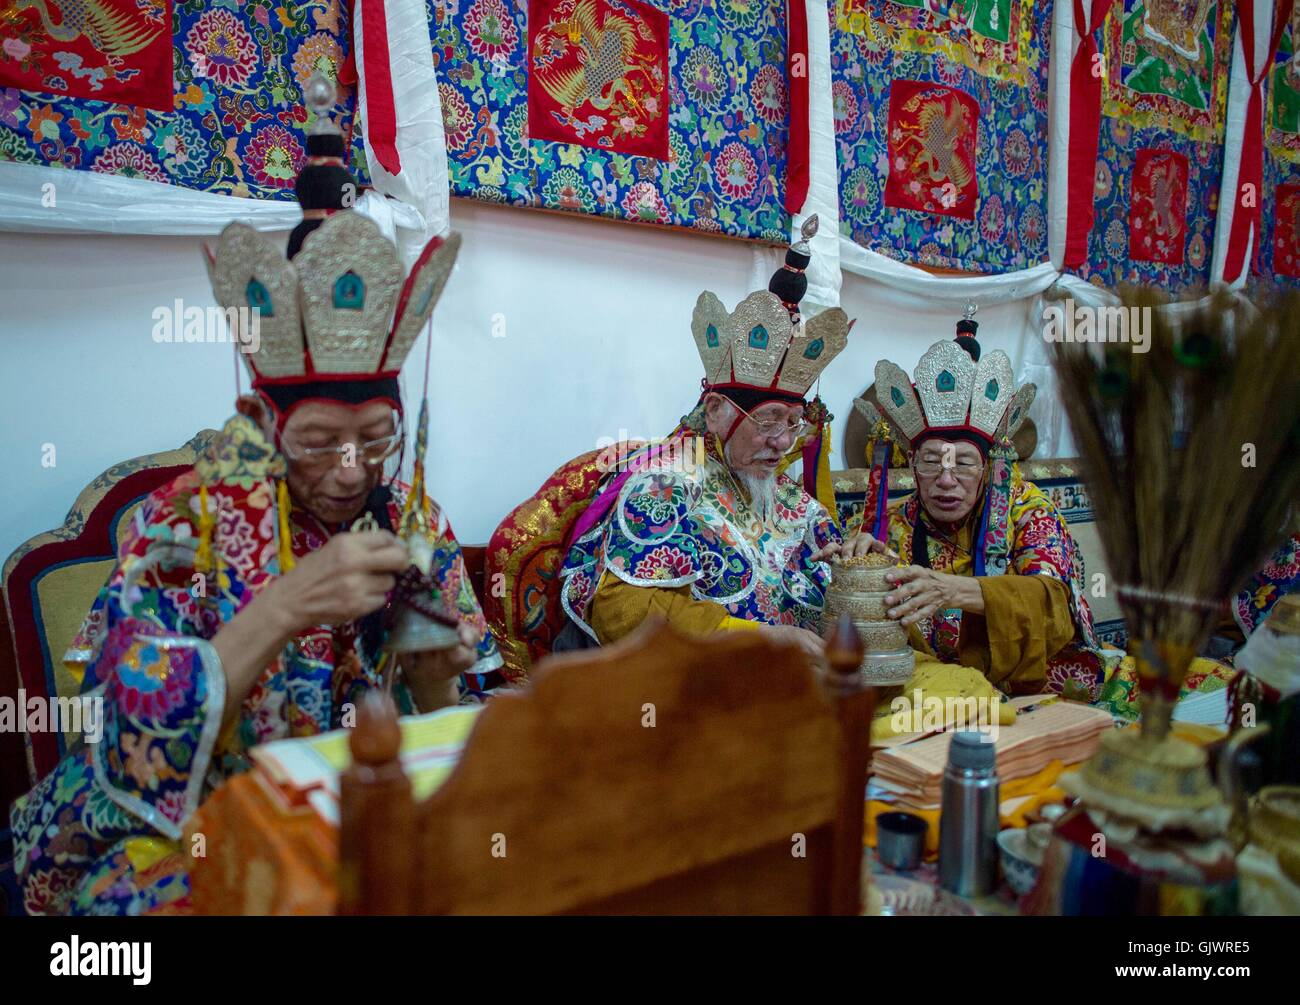 Lhasa, Tibet. 18th August, 2016. Tibetan medicine experts attend a blessing ceremony for the Tibetan medicine at - Stock Image